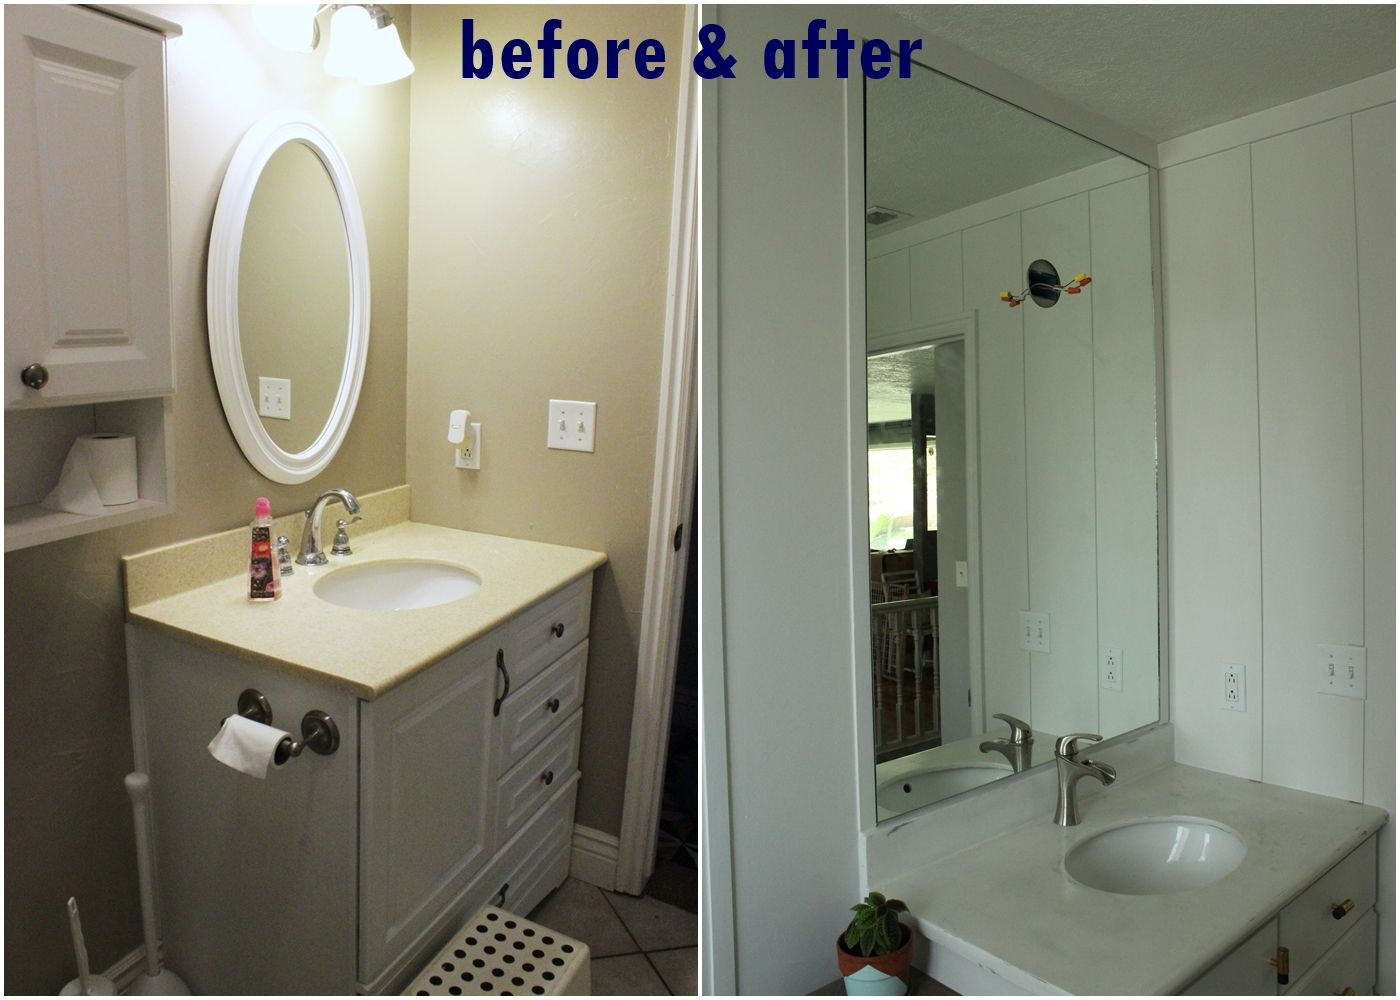 To professionally install a bathroom mirror diy prof install mirror before and after arubaitofo Choice Image